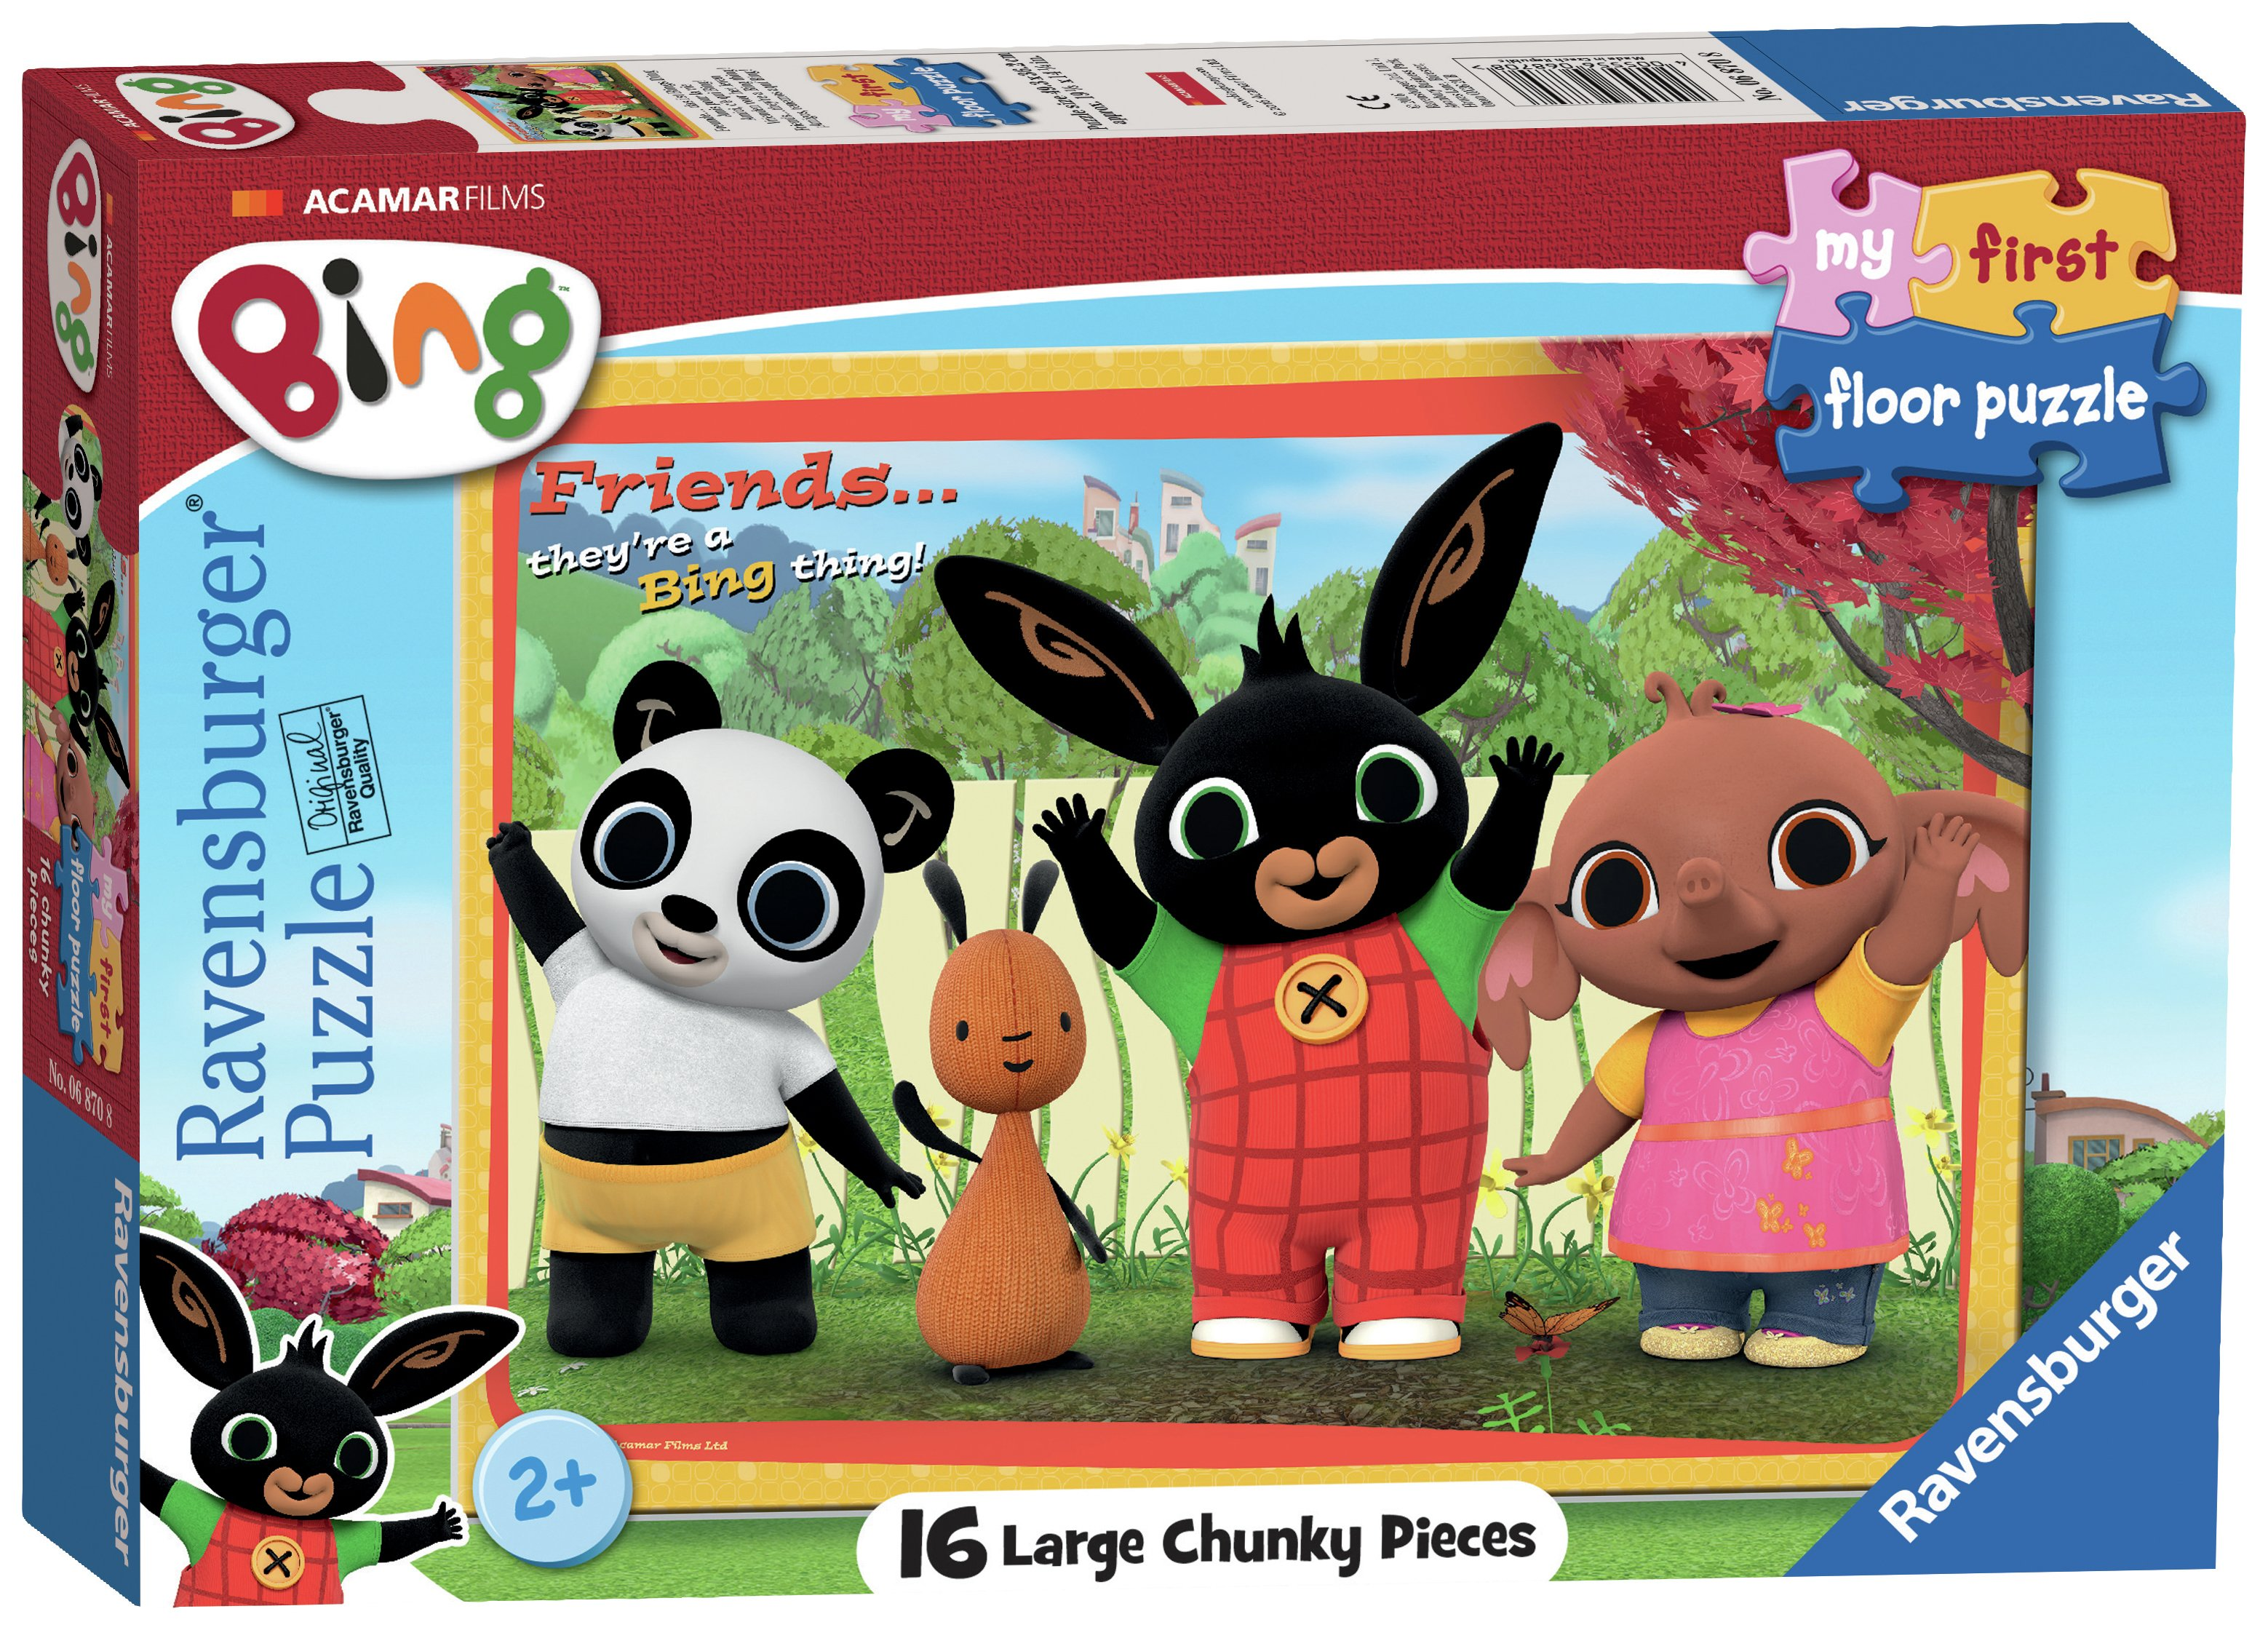 Image of Bing Bunny My First Floor Puzzle 16 Pieces.